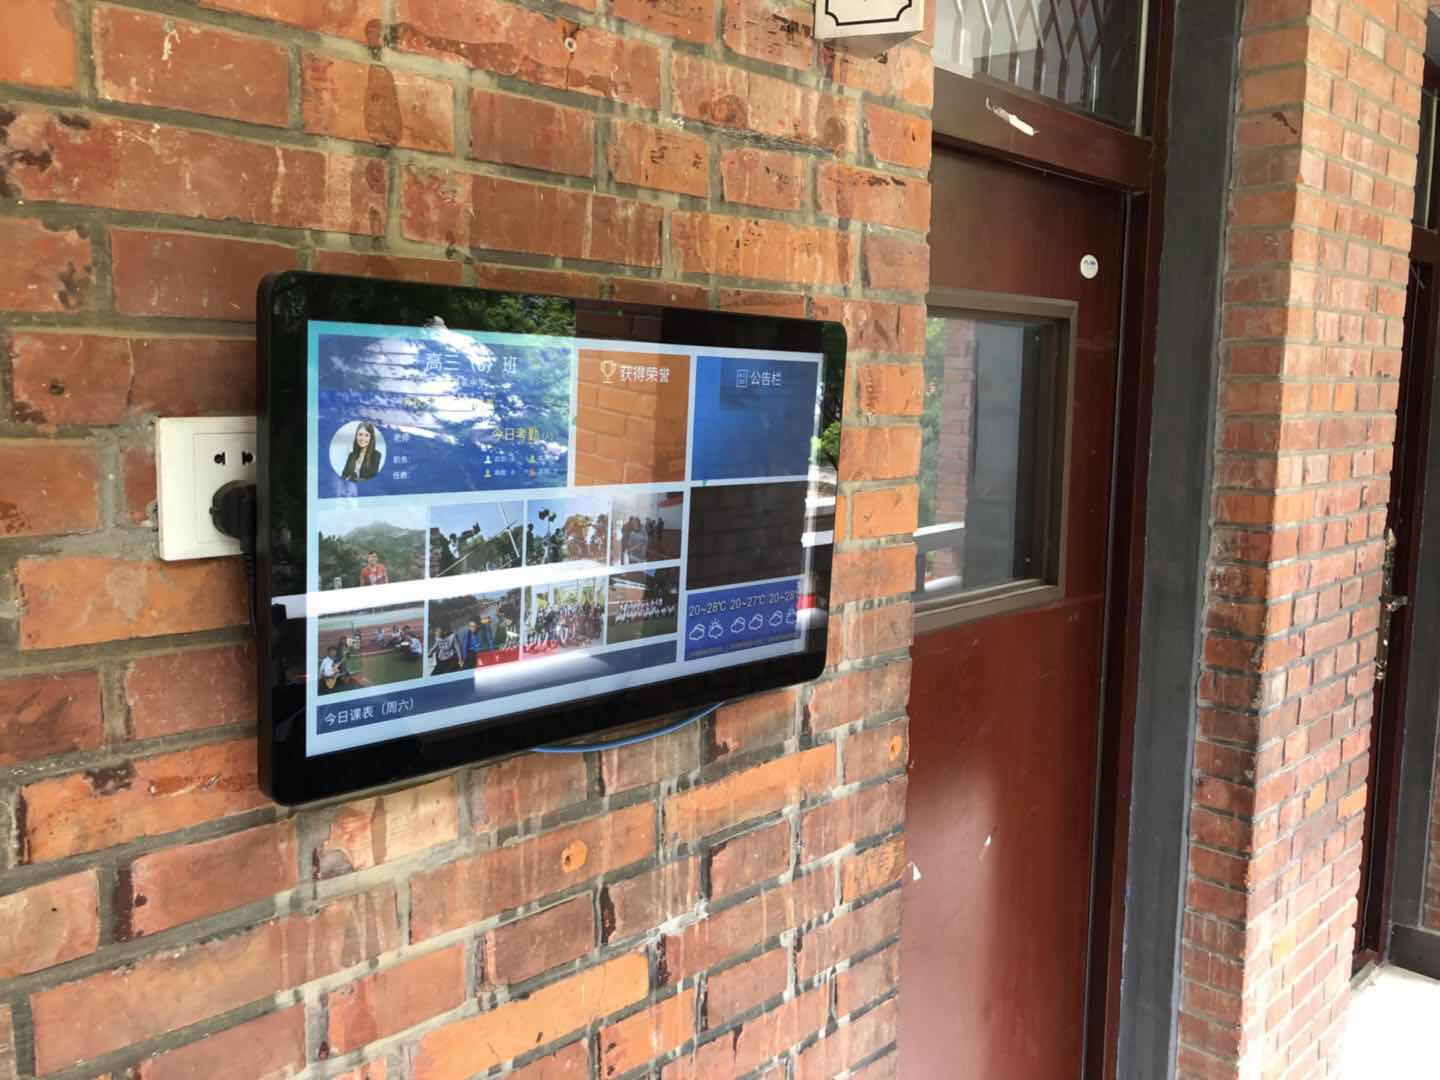 【EDUCATION】Touchwo information board made the campus smarter